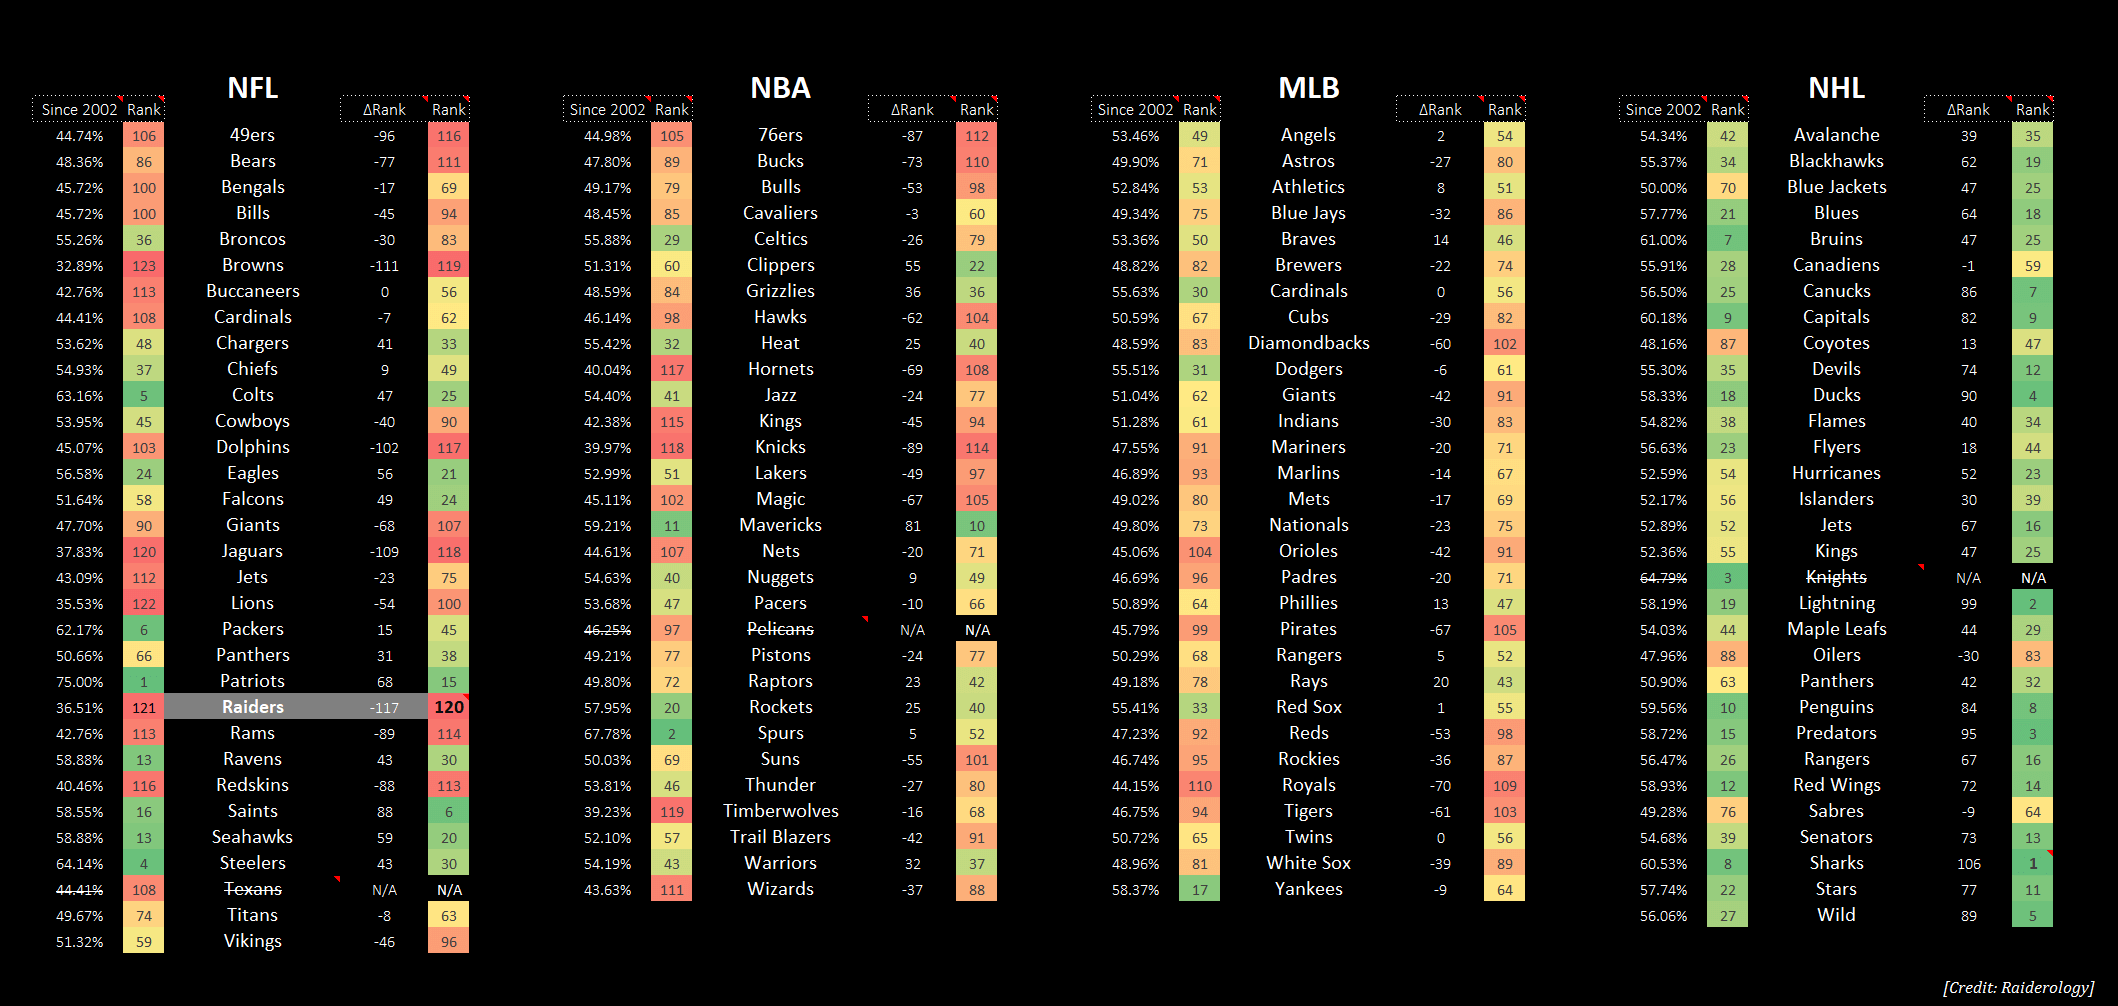 Raiders Winning Percentage AFTER Jon Gruden Left in 2002 (compared to ALL Major Sports Leagues)